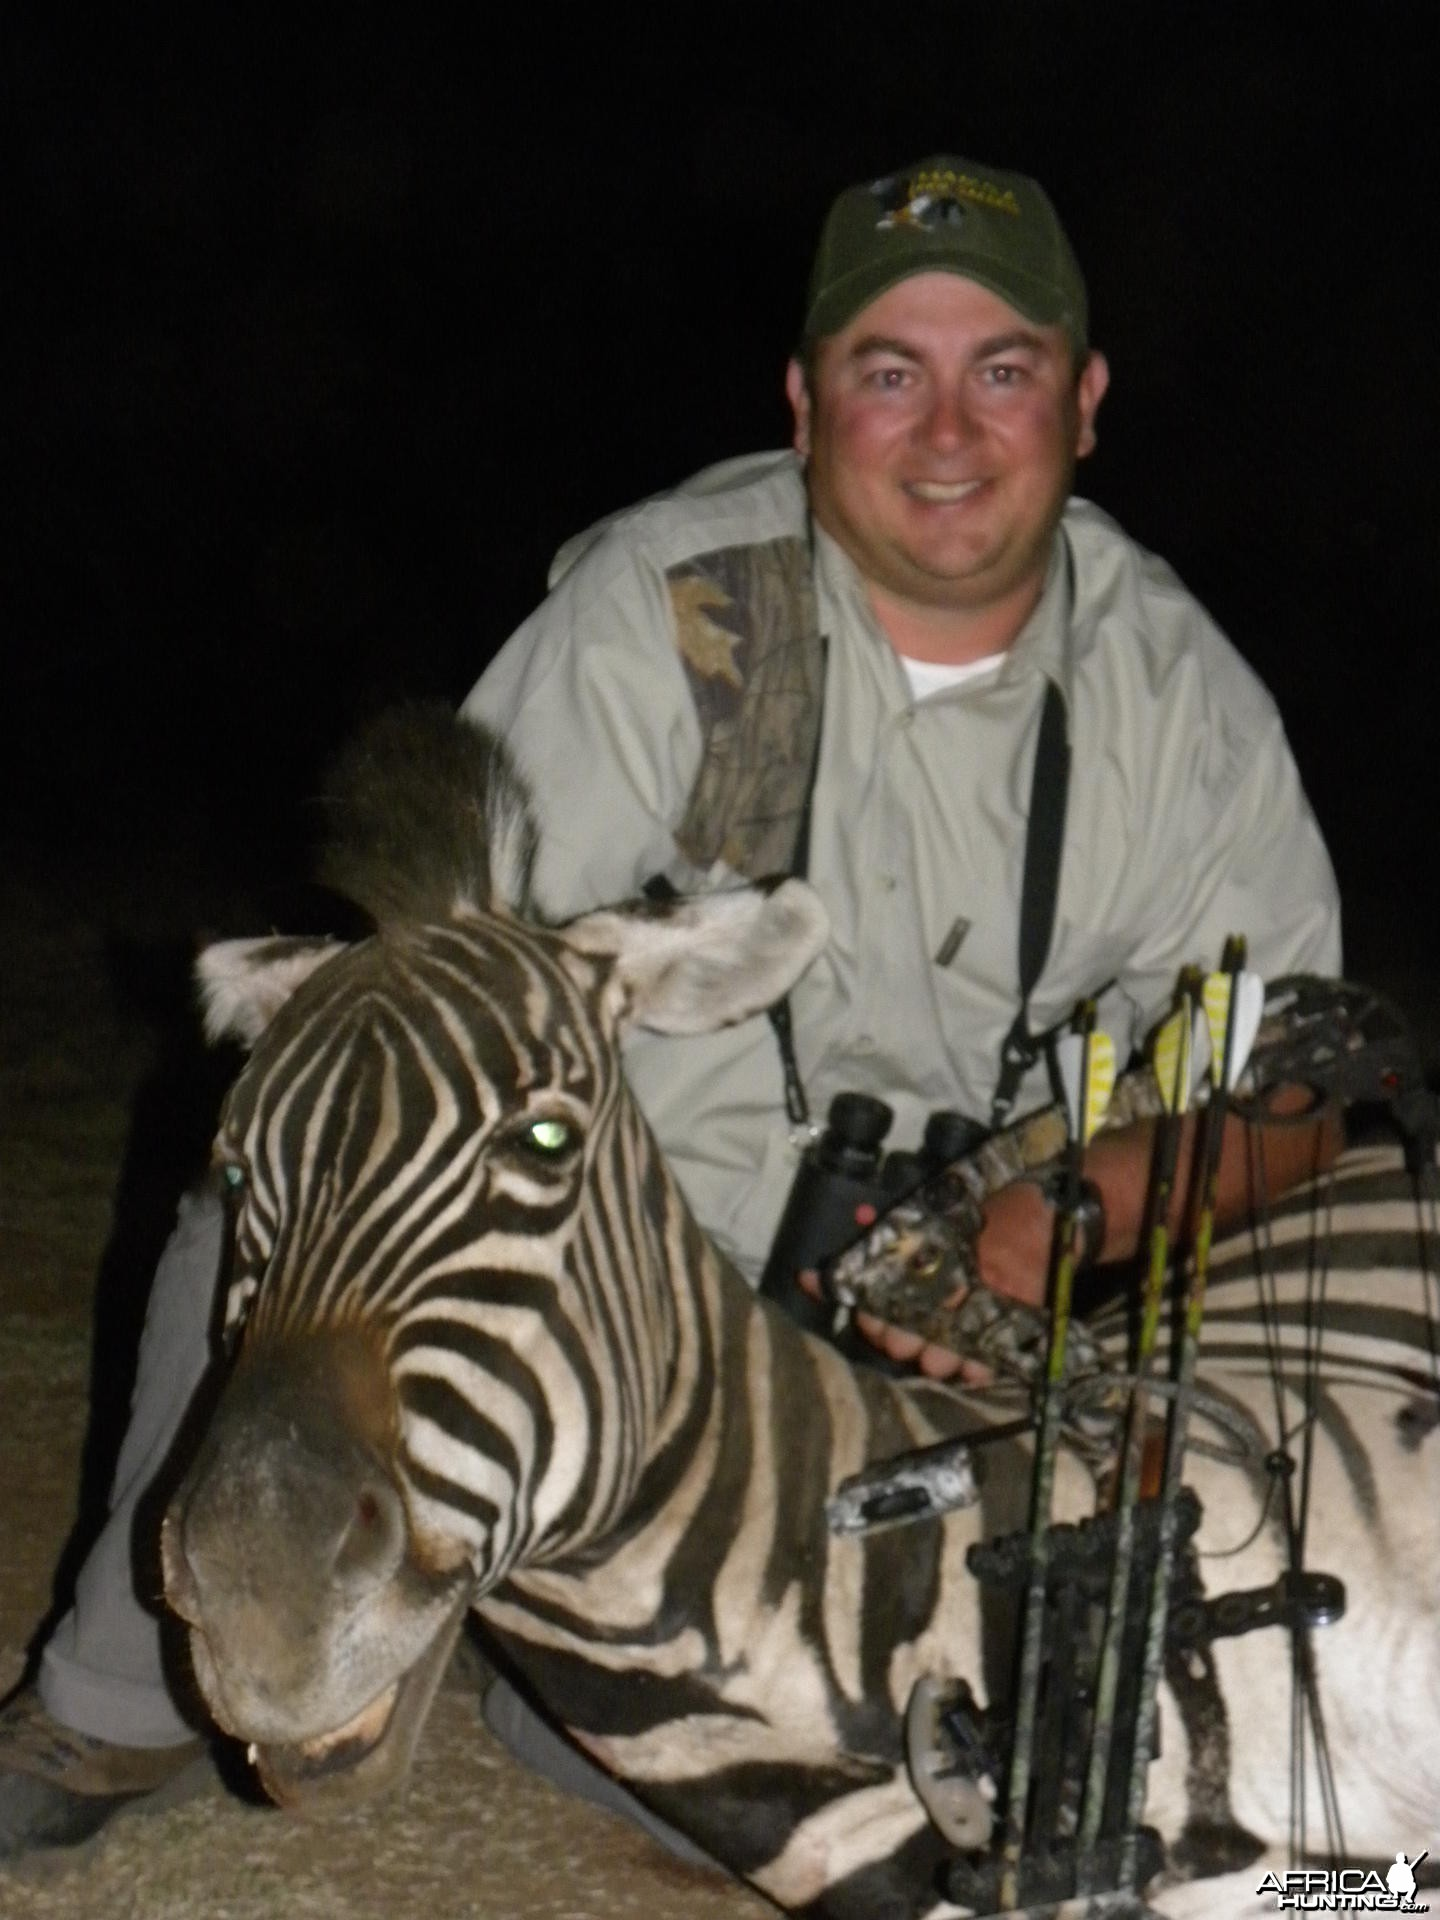 Zebra bowhunt at Mabula Pro Safaris